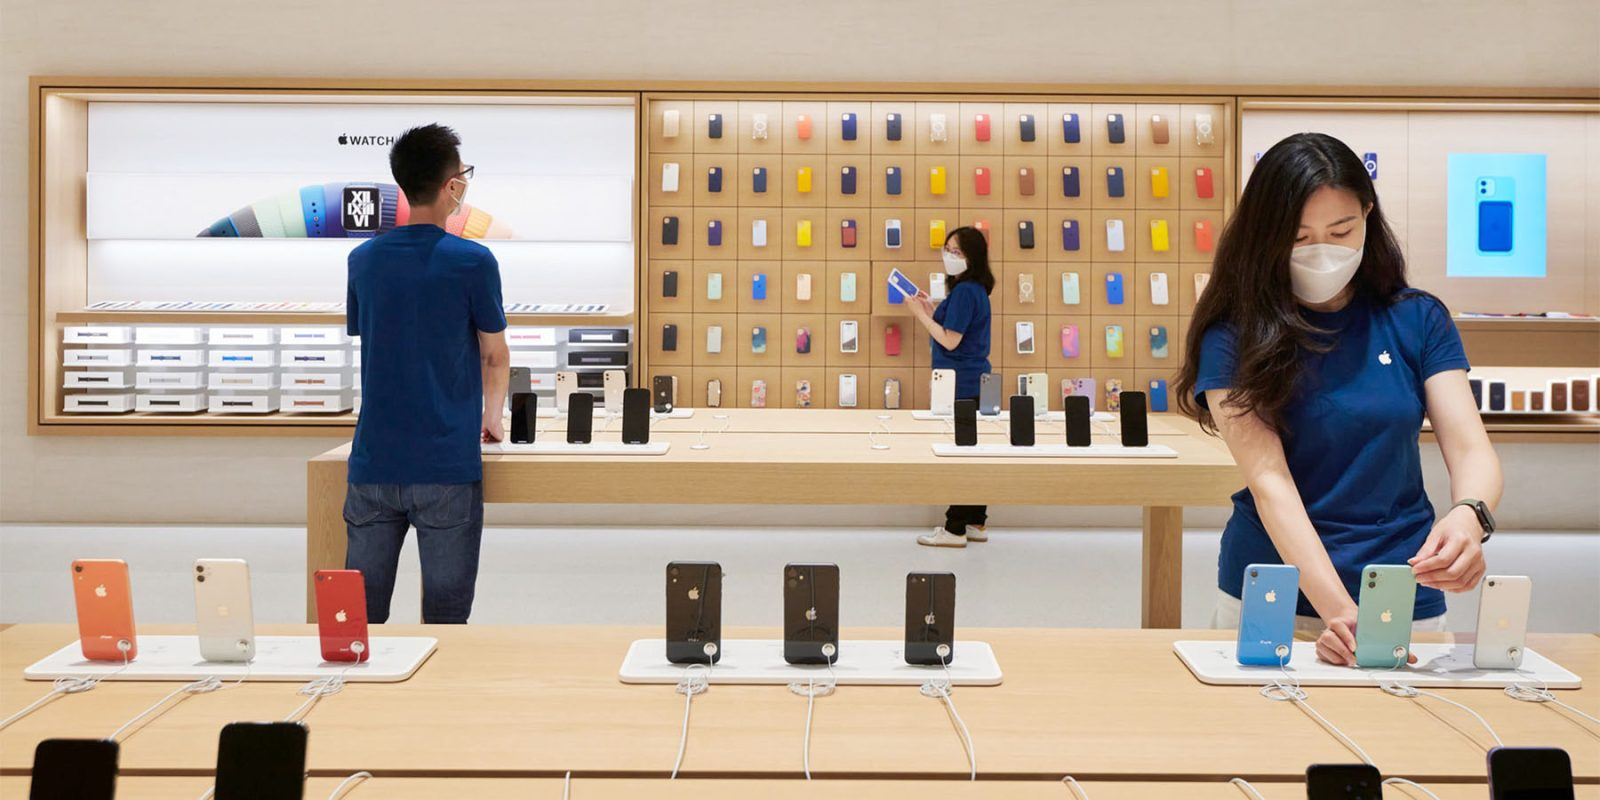 Report: Apple could face new pressure to store more customer data in China